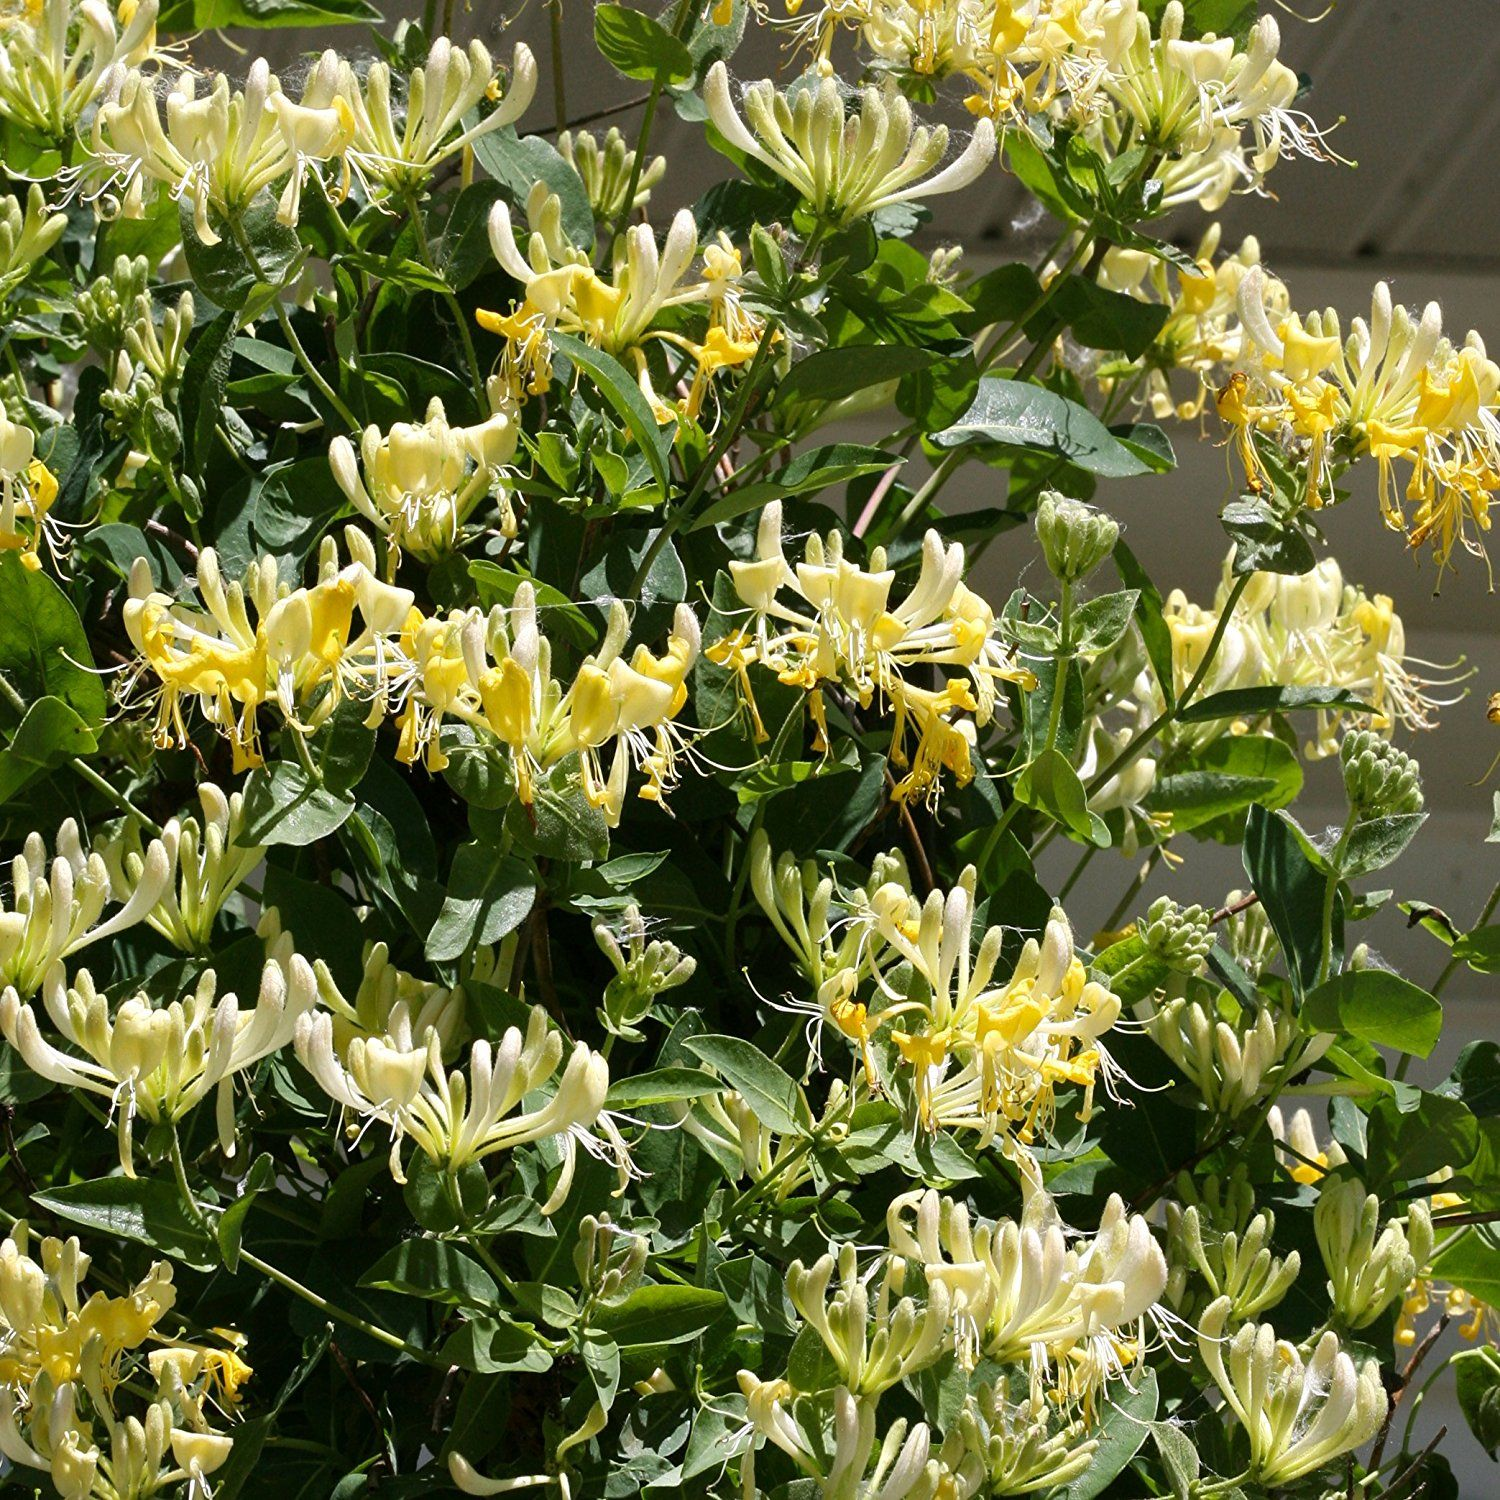 Amazonsmile Scentsation Honeysuckle Lonicera Live Shrub Yellow